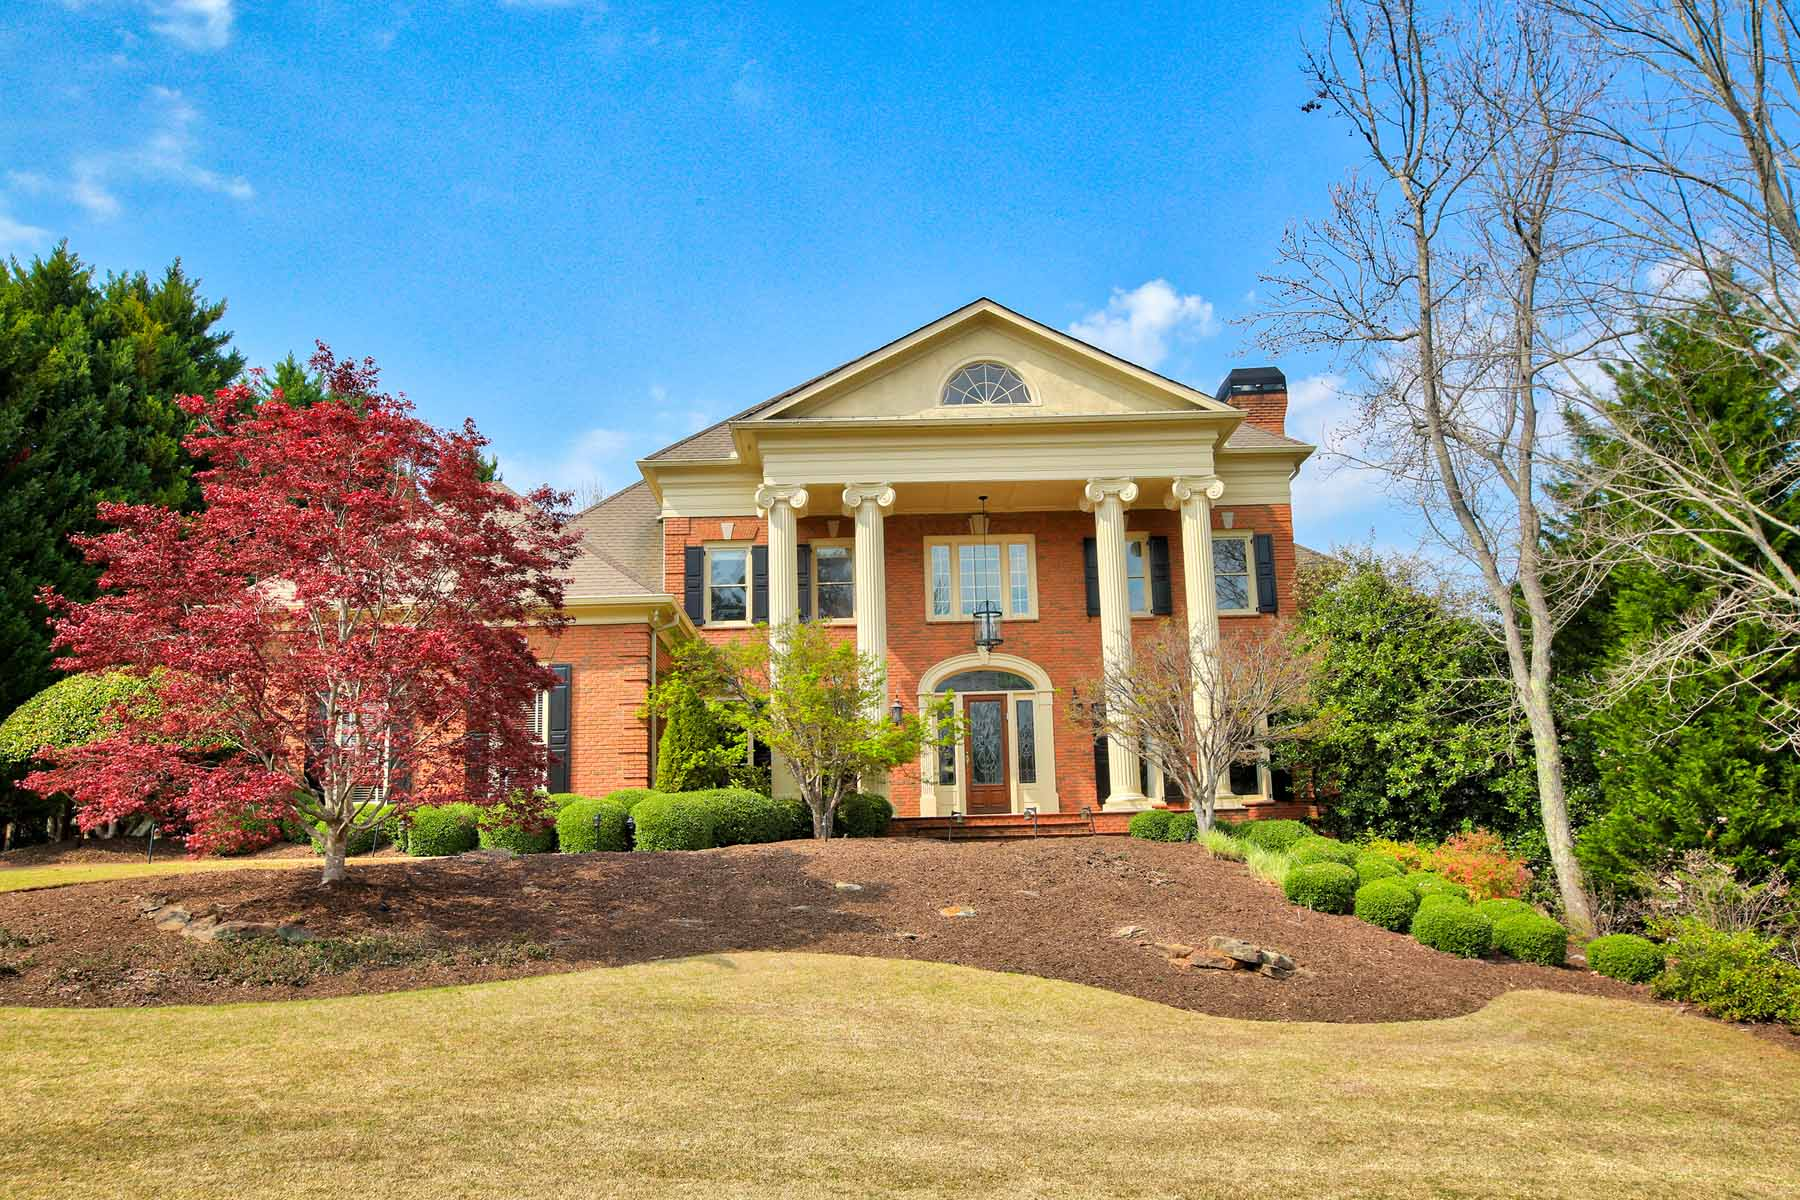 Single Family Home for Active at Stately Residence in Coveted Johns Creek 610 Falls Bay Court Johns Creek, Georgia 30022 United States